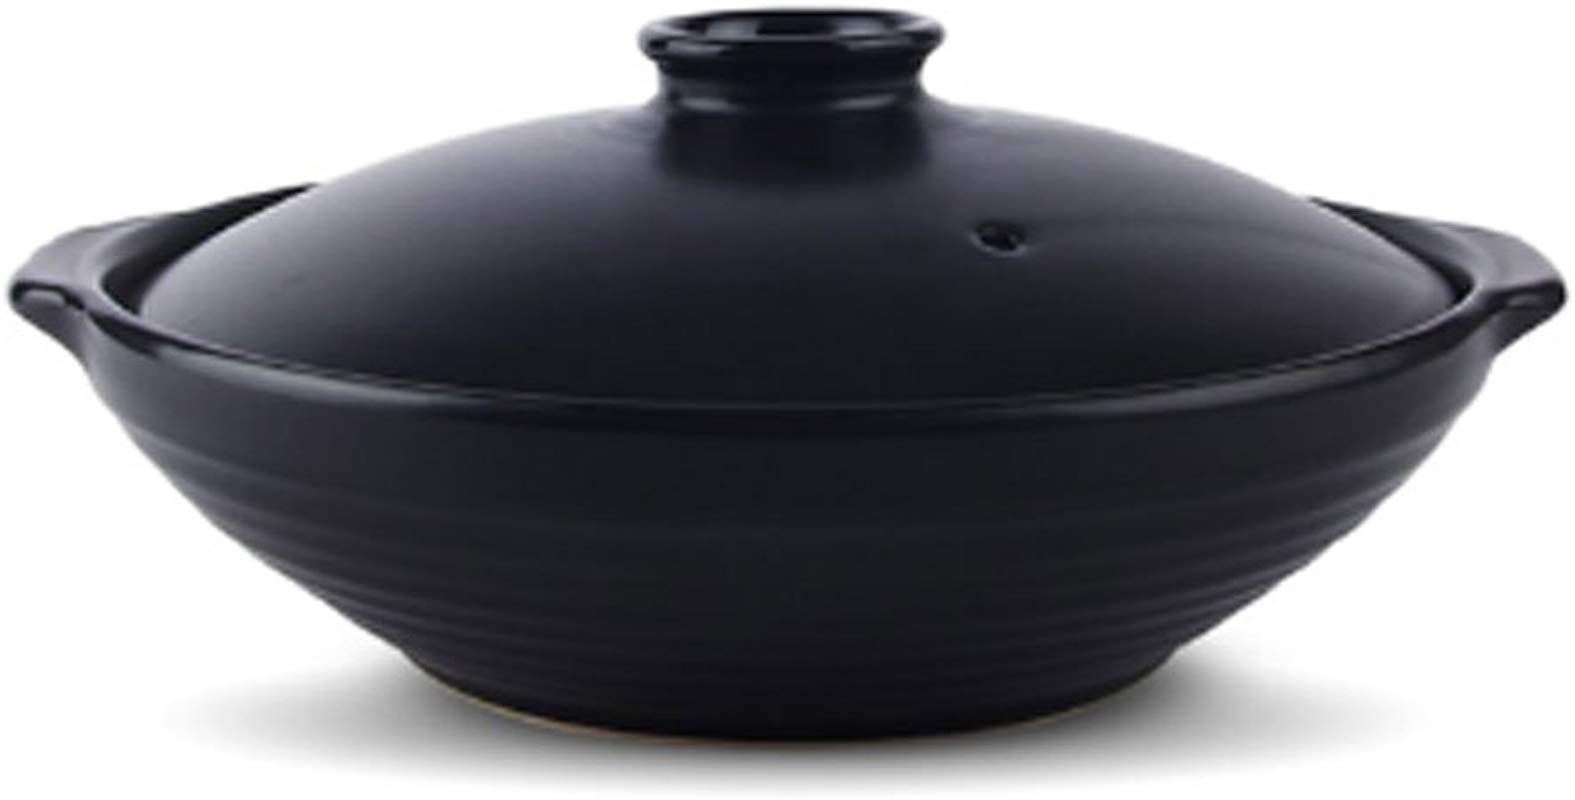 Black 1 25 Quarts Ceramic Stew Soup Hot Pot With Lid Japanes Donabe Hot Pot Stockpot Cookware For Multipurpose Use